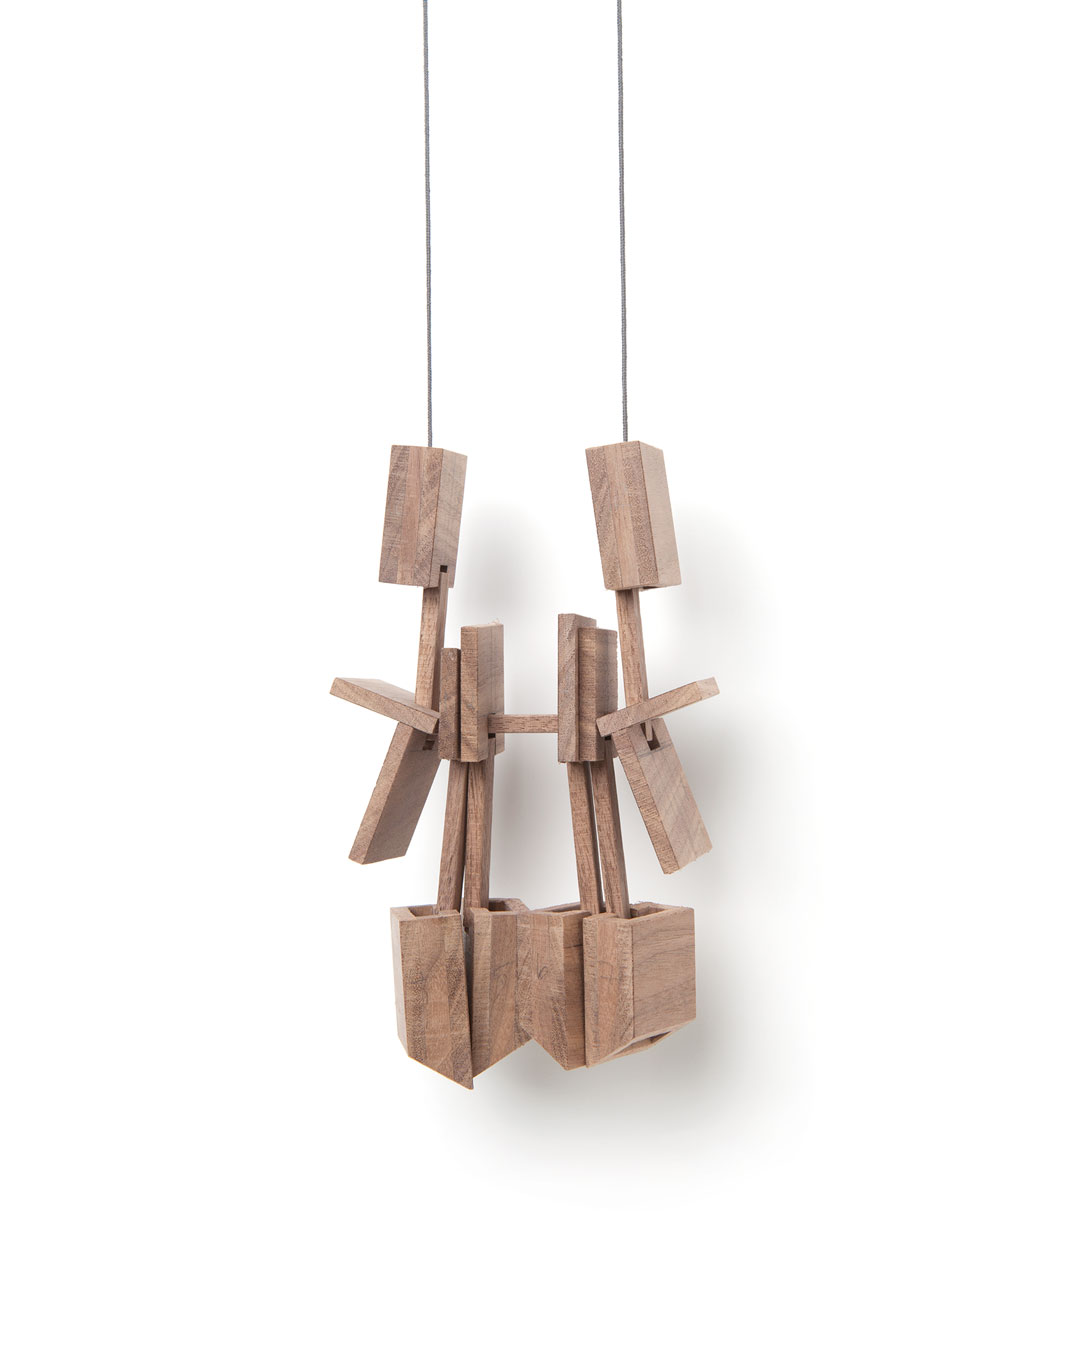 Despo Sophocleous, Momentarily Displaced 4, 2015, necklace; walnut, steel, cotton, 165 x 95 x 35 mm, €1700